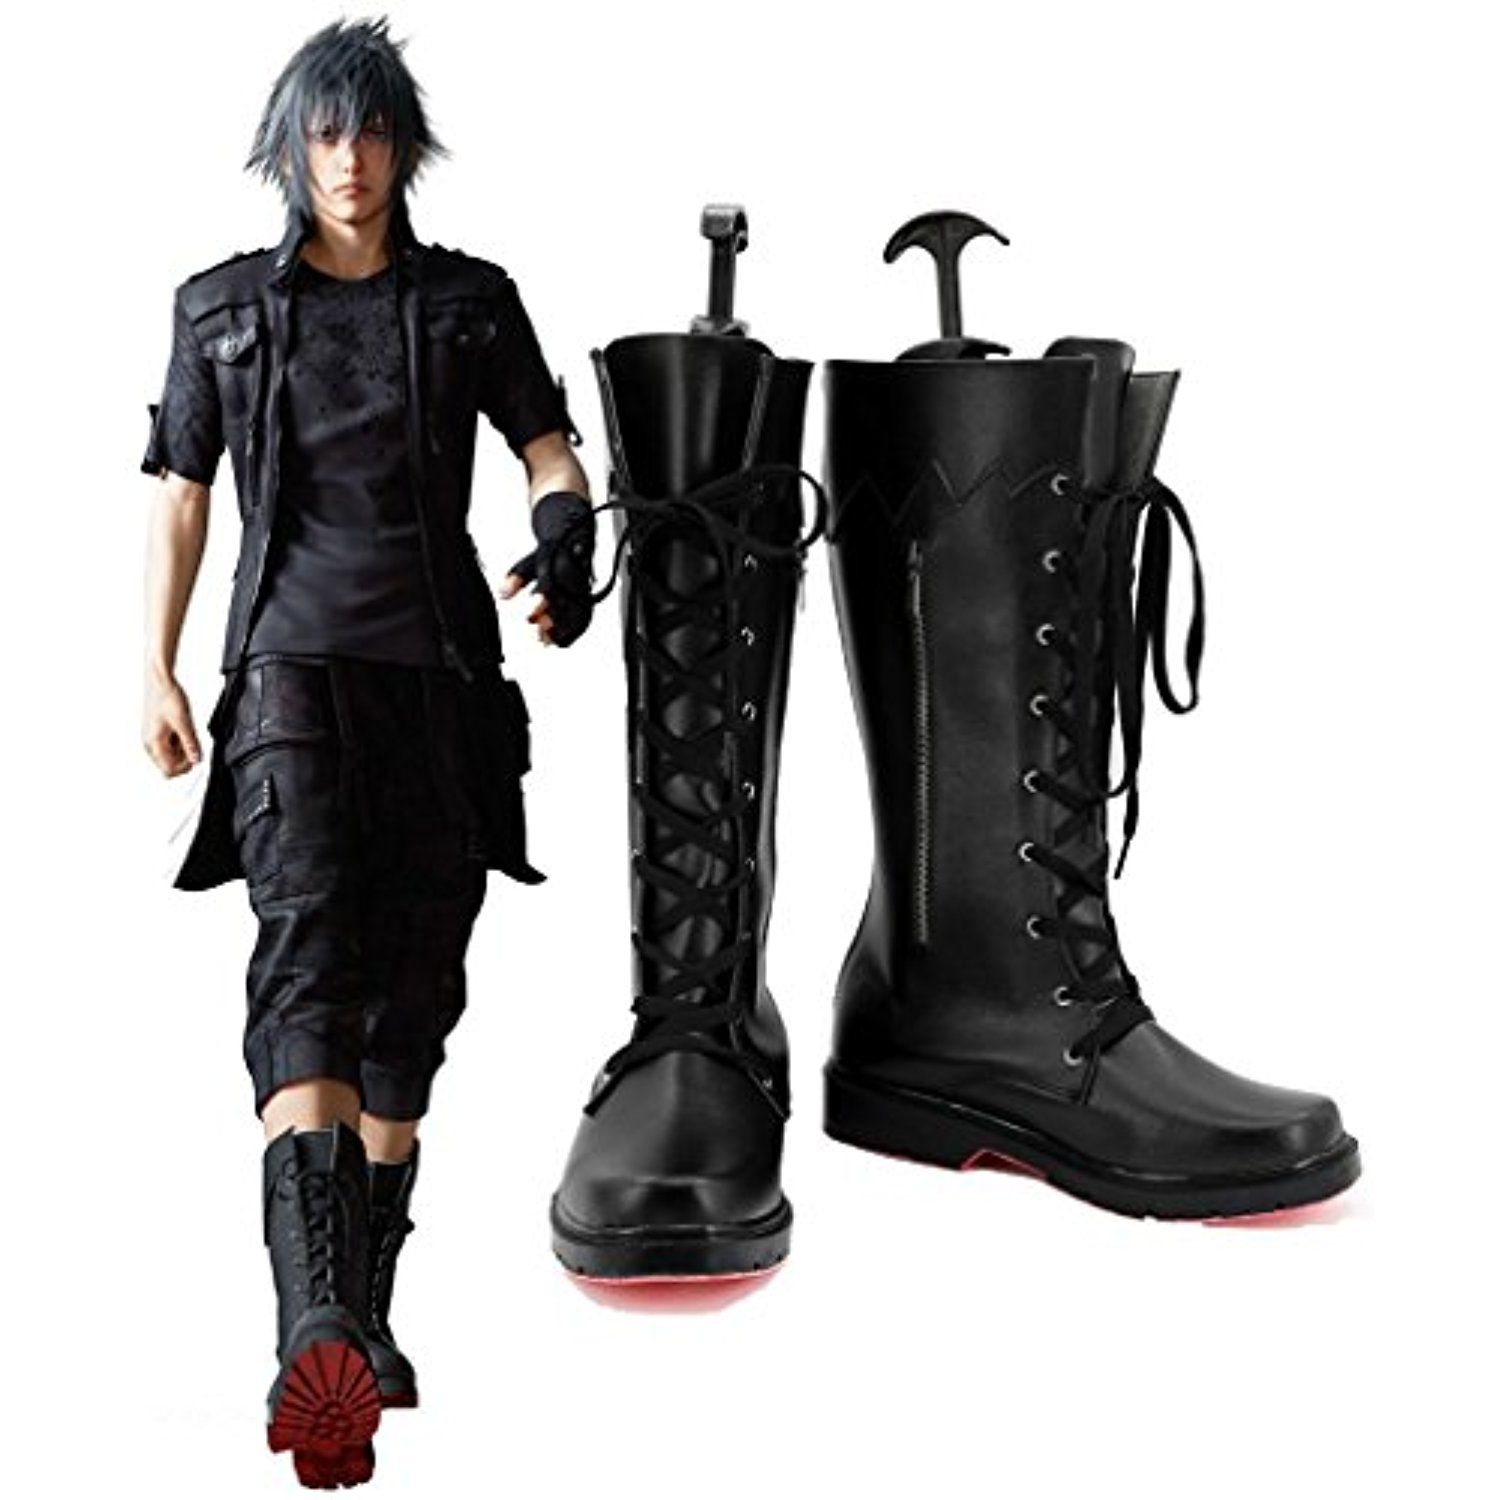 Final Fantasy XV Noctis Lucis Caelum Cosplay Shoes Boots Custom Made